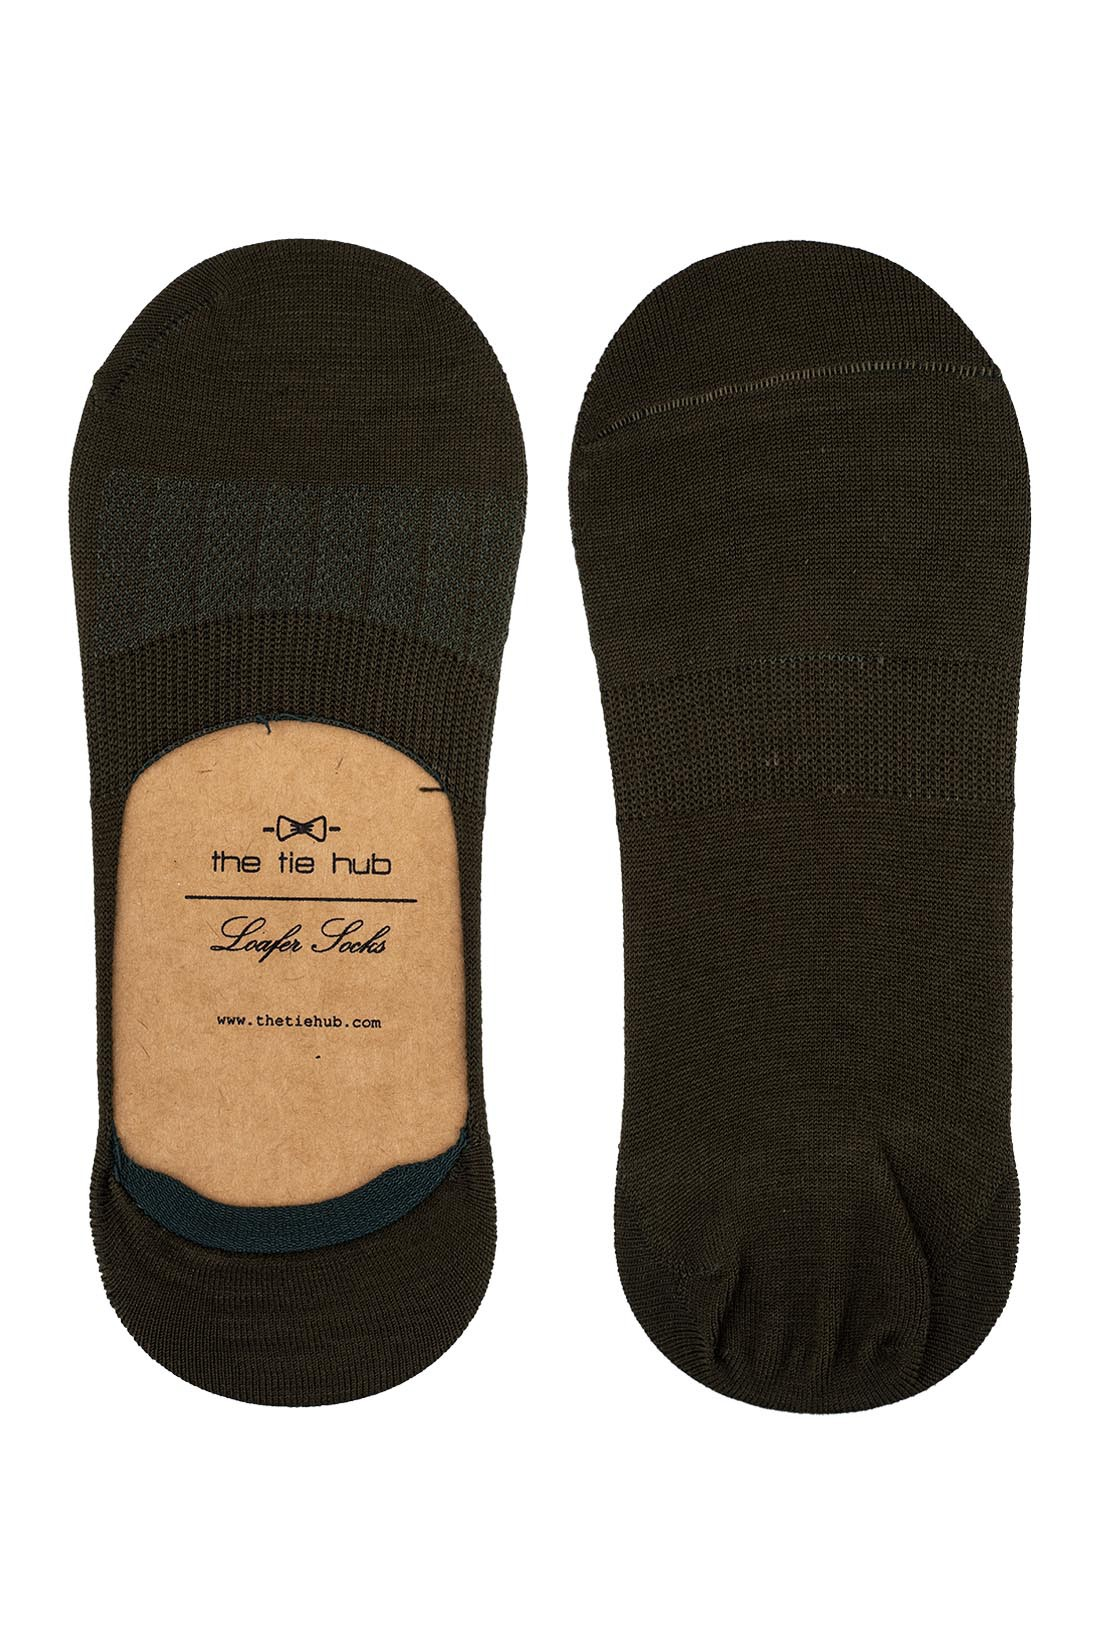 Corty Solid Green Loafer Socks